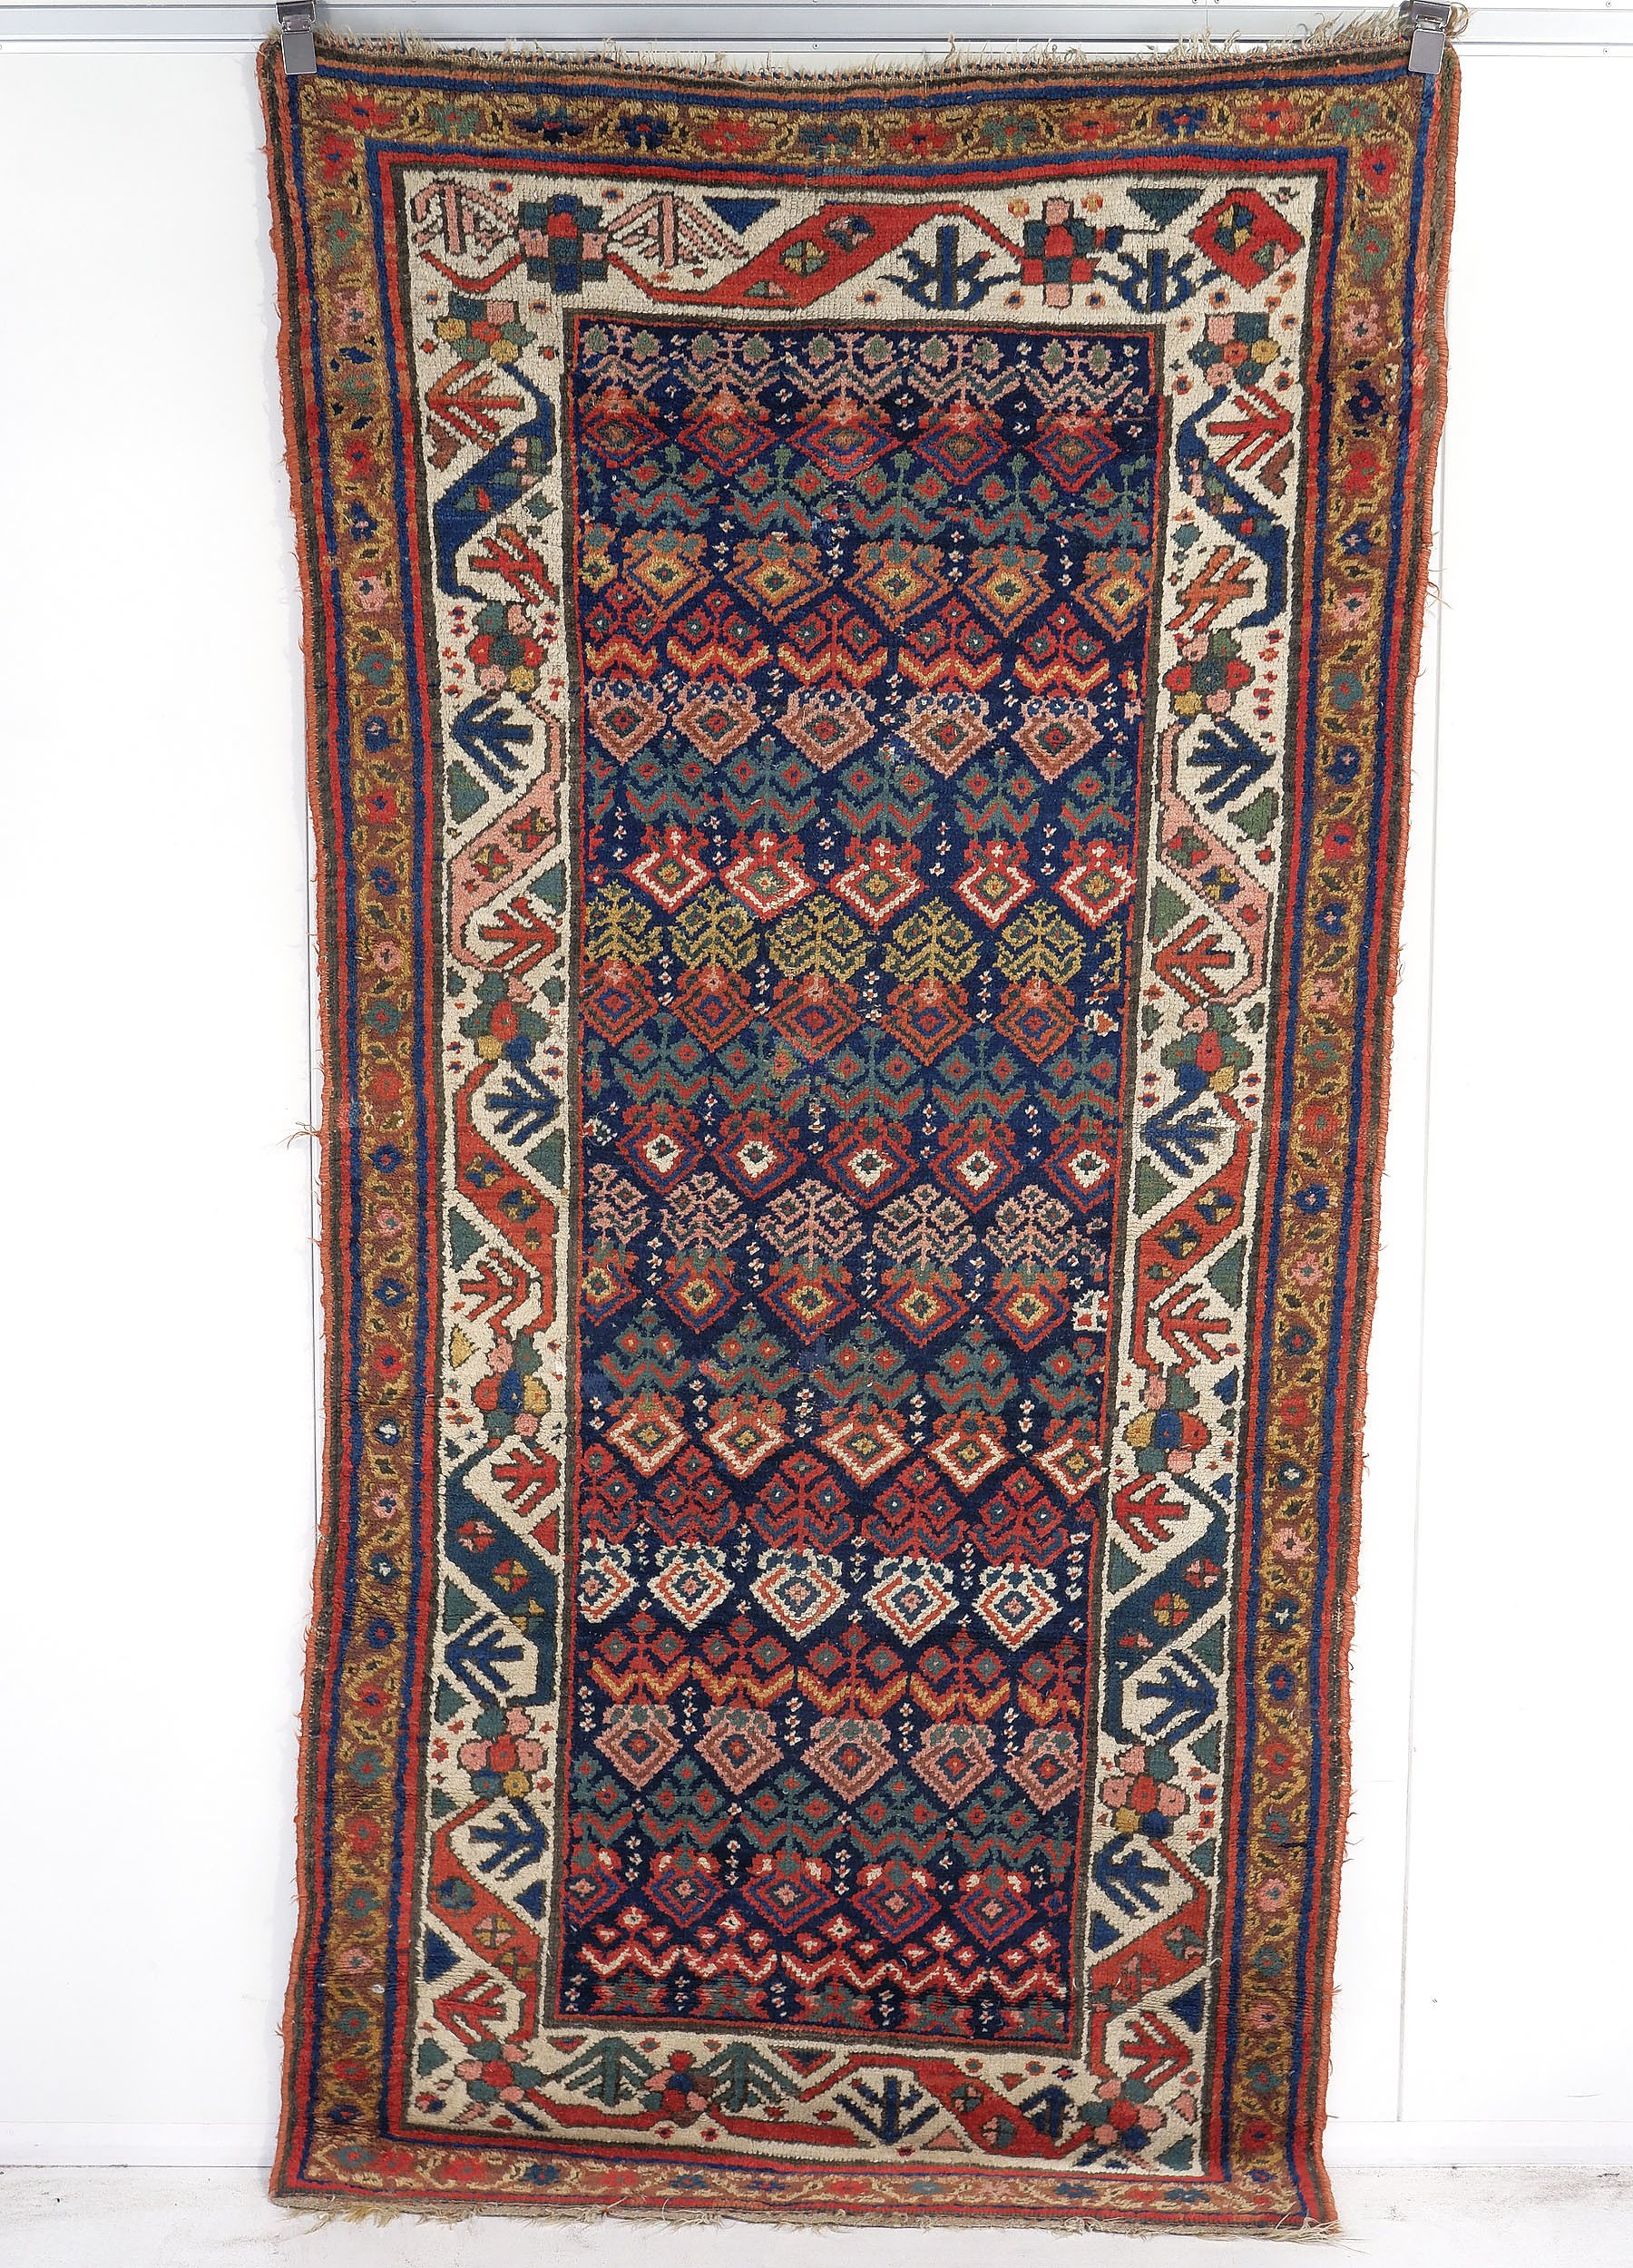 'Superb Antique Caucasian Kuba Hand Knotted Wool Pile Palmette Rug, Late 19th/Early 20th Century'